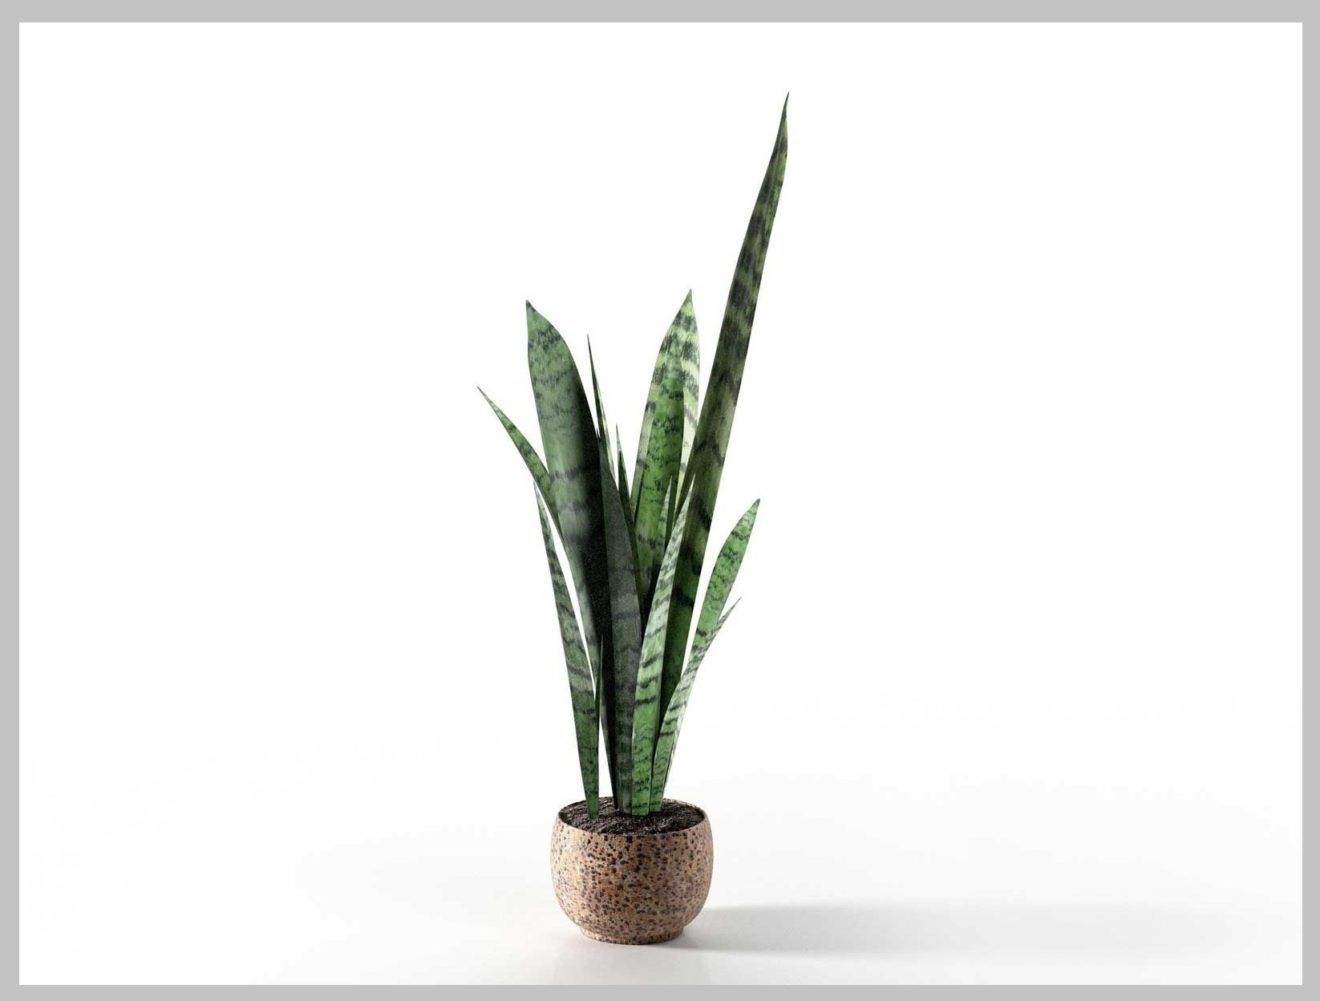 About Snake Plant